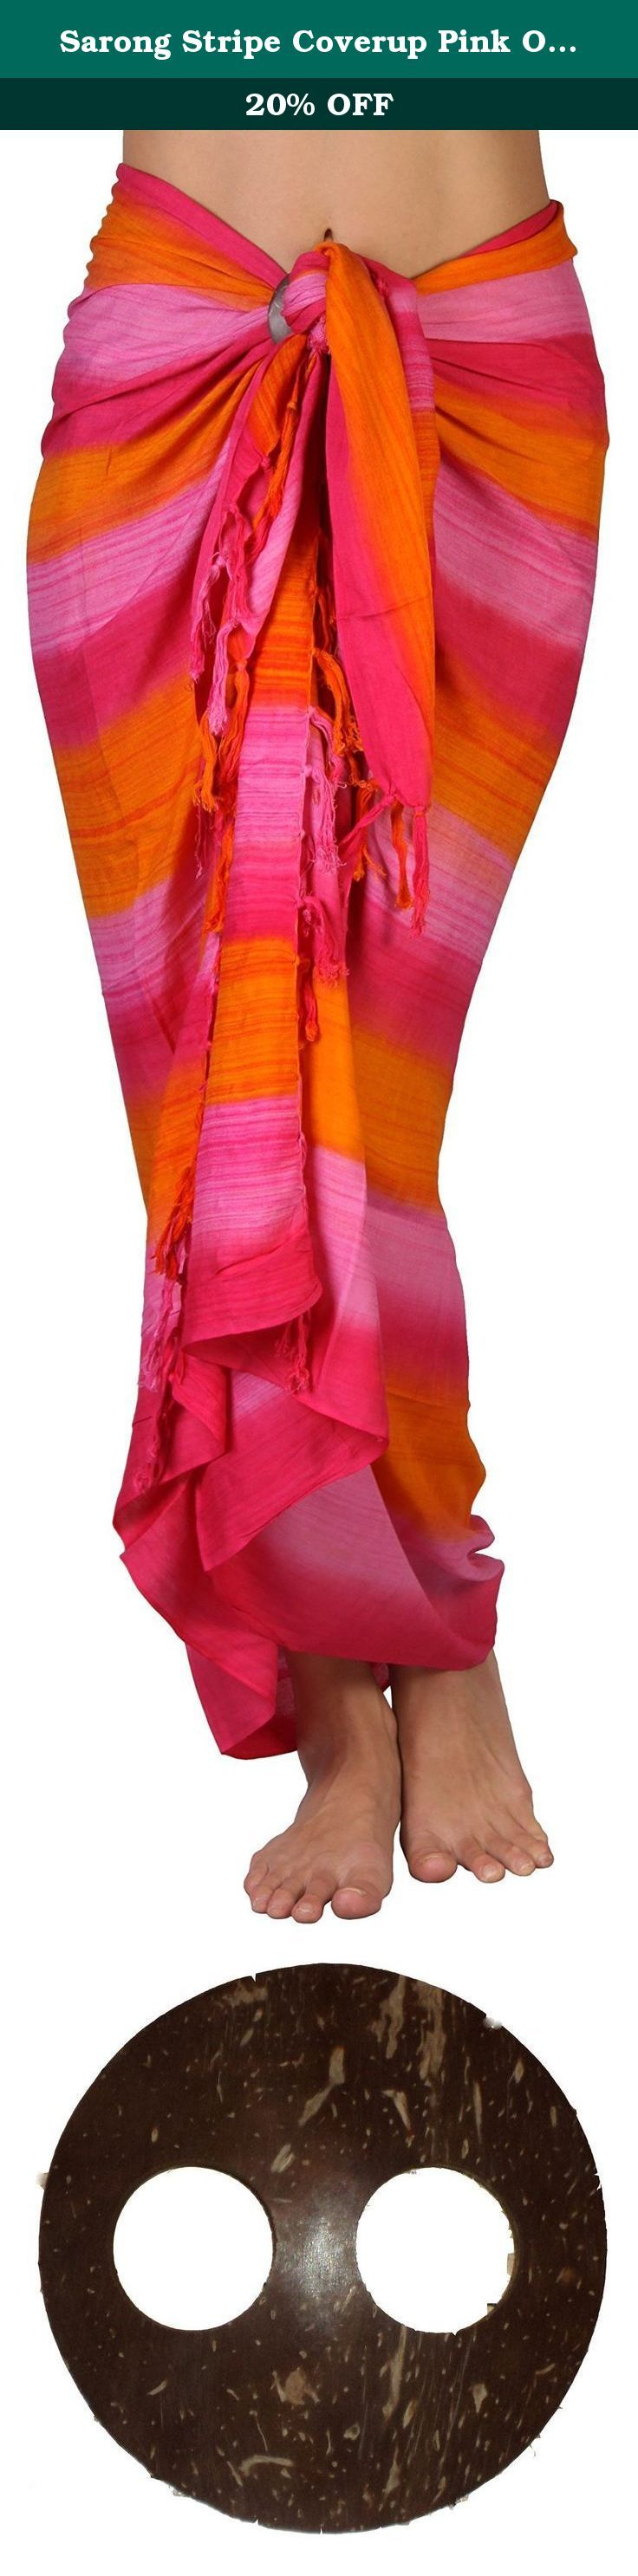 """Sarong Stripe Coverup Pink Orange. This striped sarong is a dream to wear feeling light and sensual on the skin. With soft colors and slightly transparent, it is perfect for beach and pool. Made of 100% rayon, it can be used as a coverup, beach blanket, shawl, dress, or skirt. Length can be adjusted by simply folding the width down. Includes a coconut clip for easy tying; Simply put an edge of the fabric in the two holes and pull through for a snug fit. Machine Wash. 65""""L by 45""""W. Back…"""